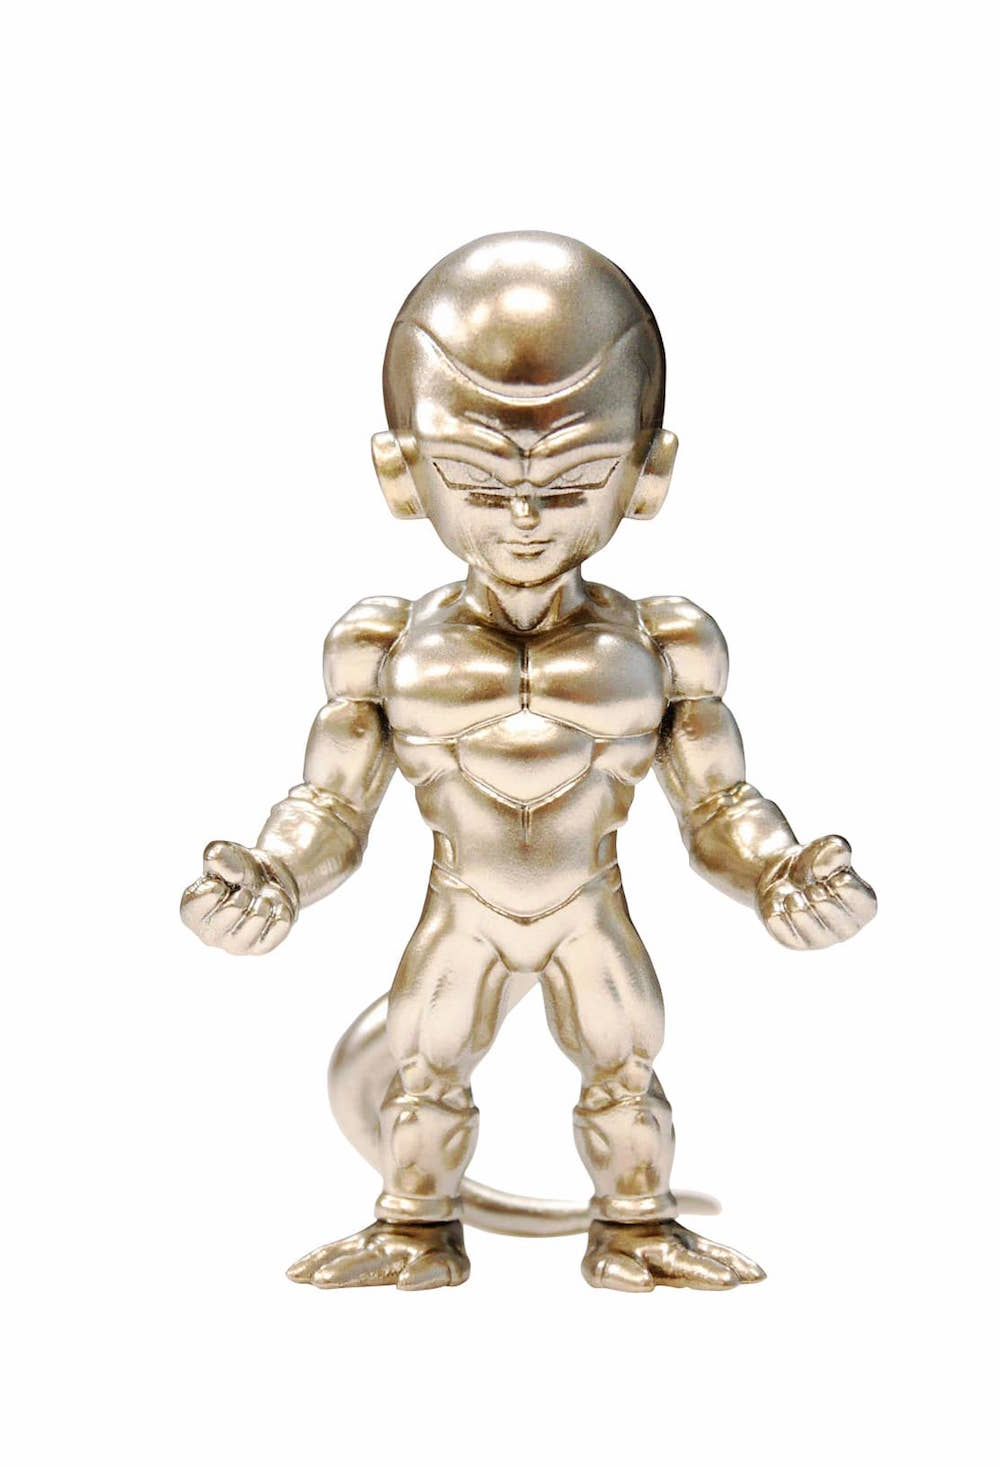 GOLDEN FREEZER MINI FIGURA 6 CM DRAGON BALL Z SERIES 3 ABSOLUTE CHOGOKIN